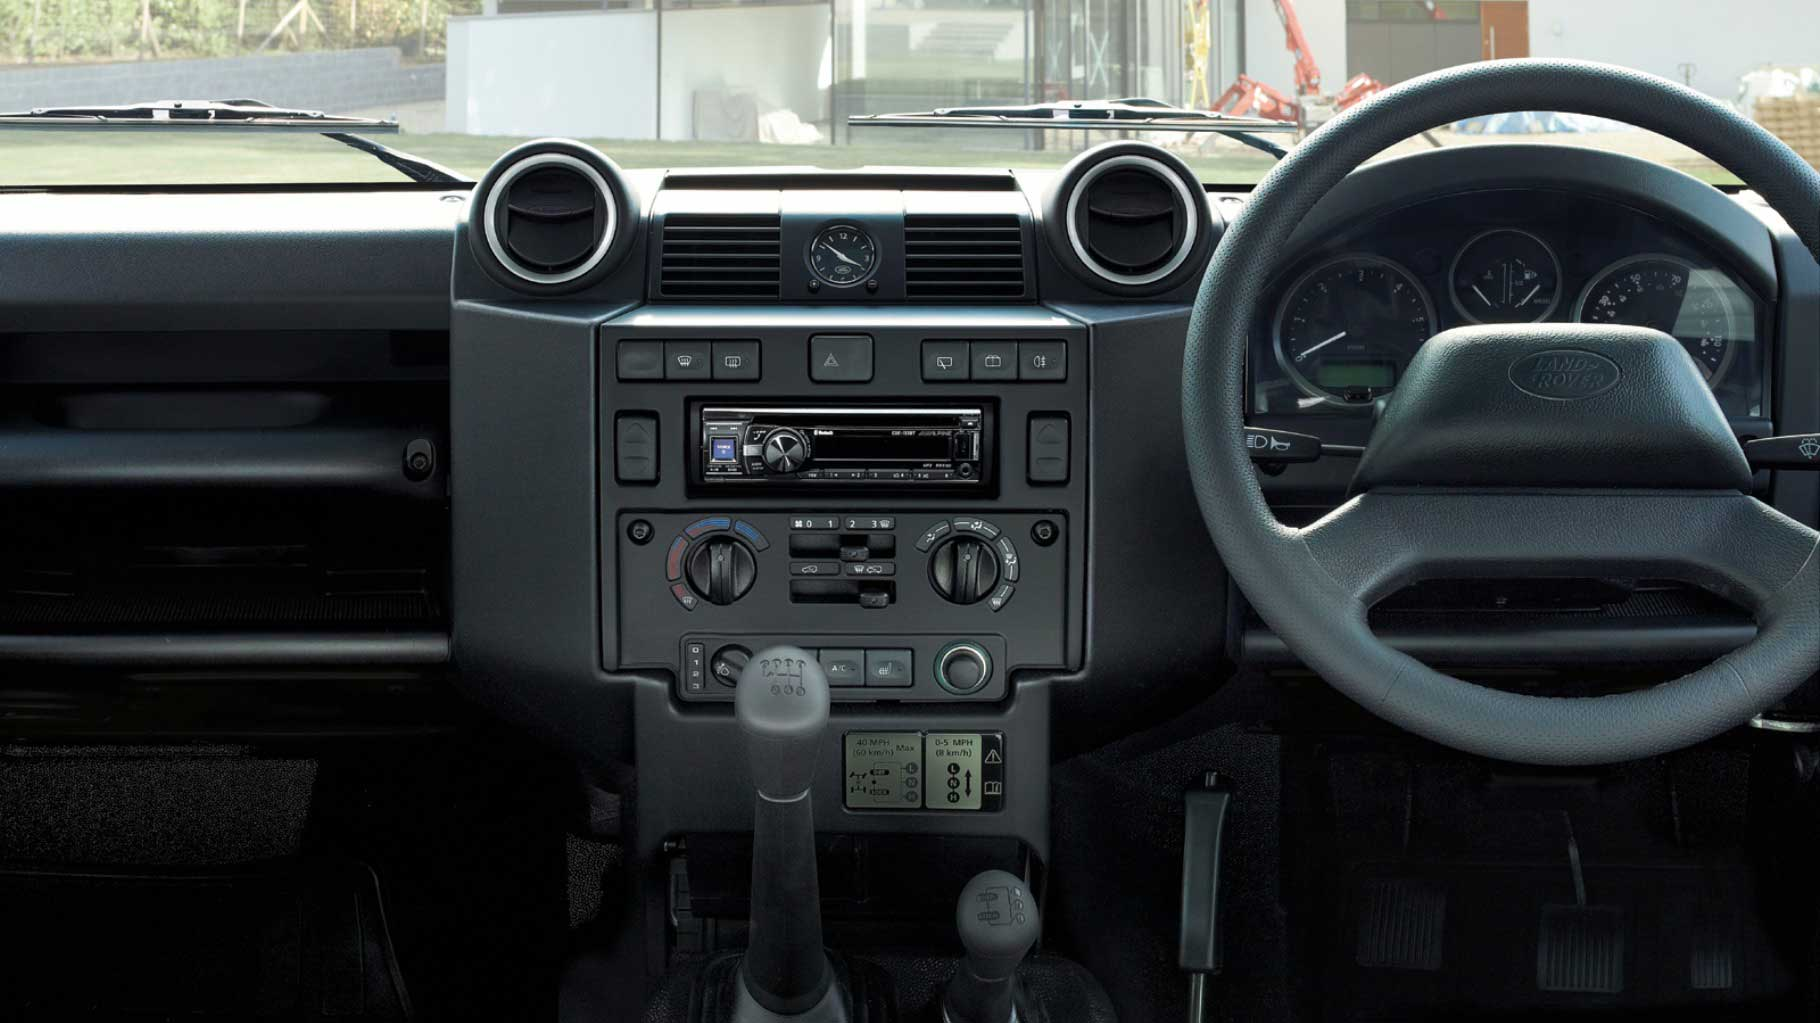 Land Rover Defender 110 Interior Image Gallery Pictures